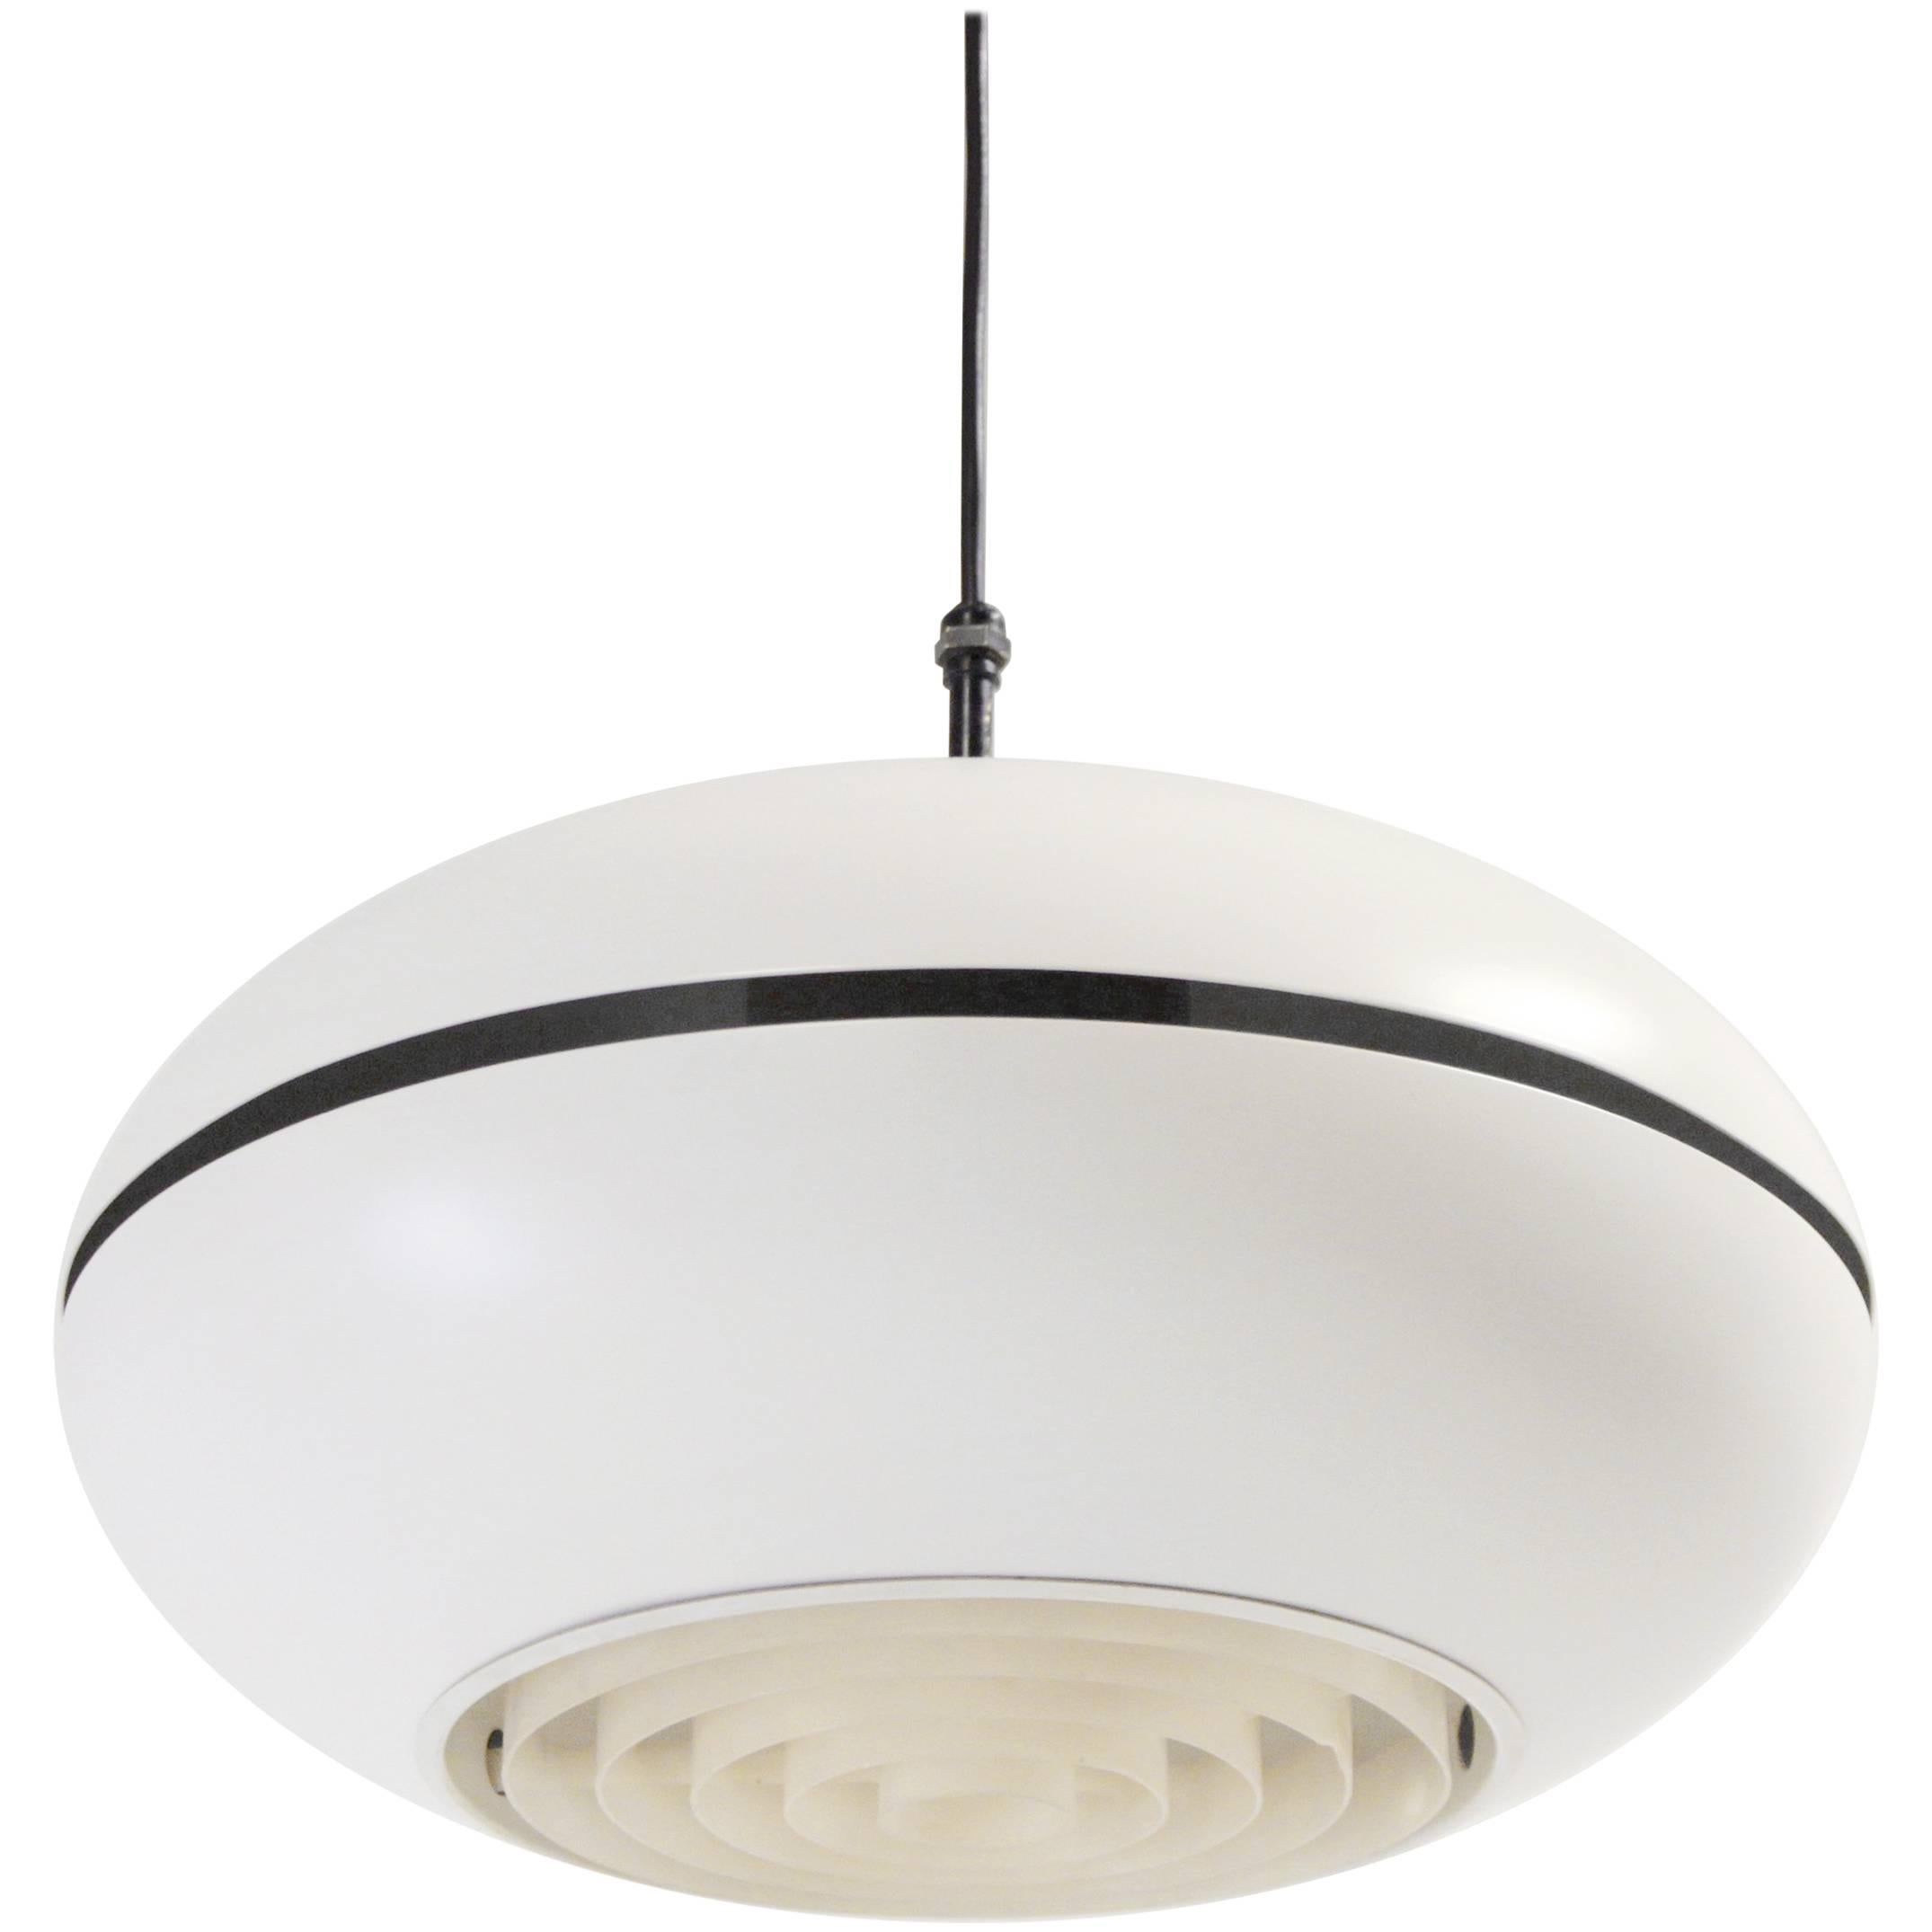 Midcentury Ceiling Light by Birger Dahl for Sønnico, 1960s